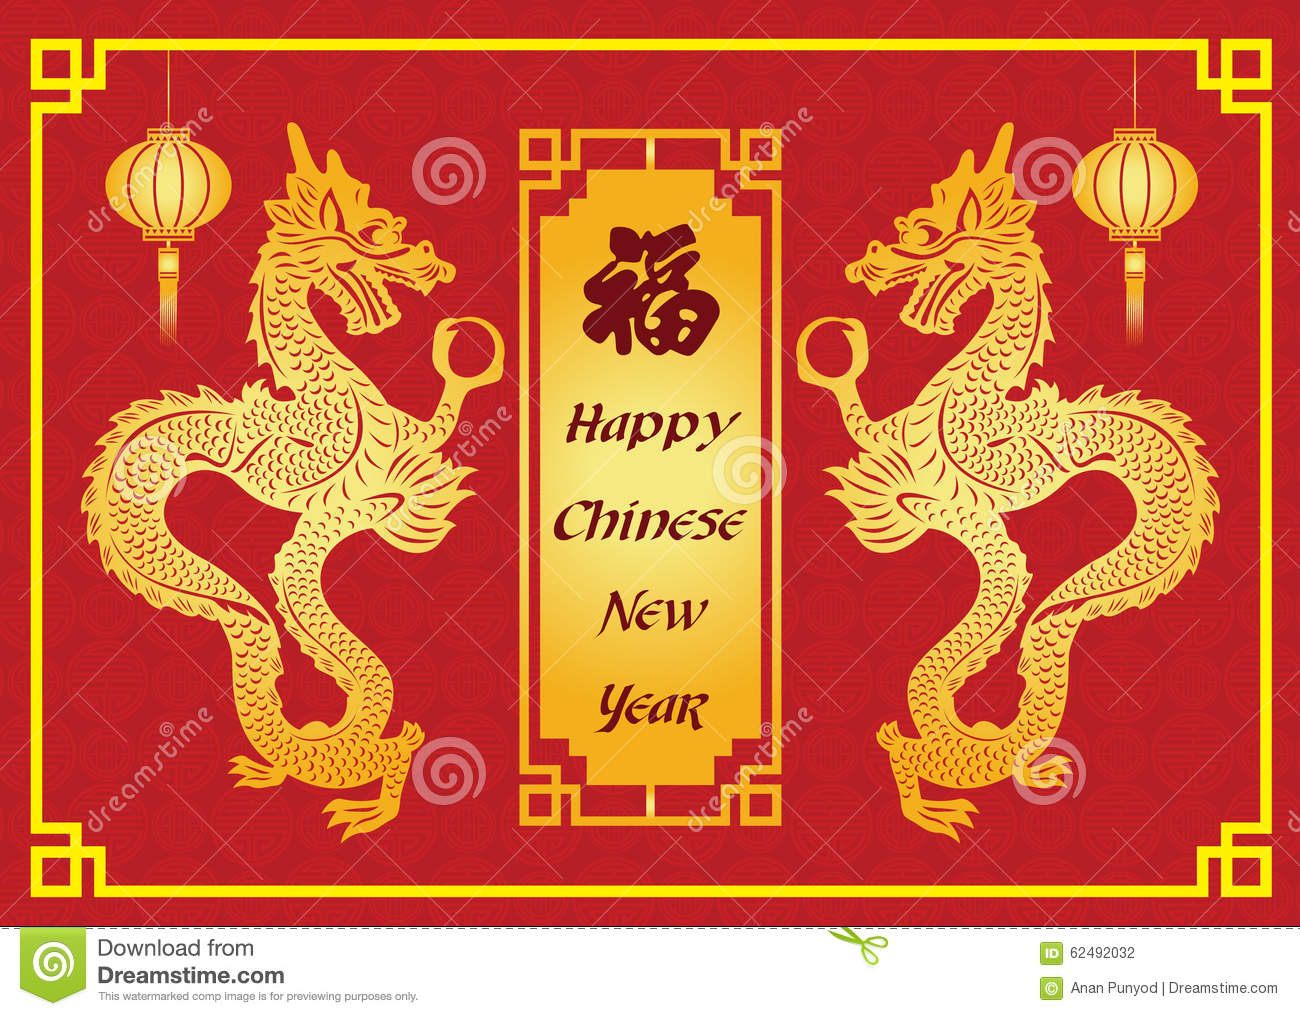 Happy chinese new year card is gold dragon stock vector happy chinese new year card is gold dragon kristyandbryce Choice Image